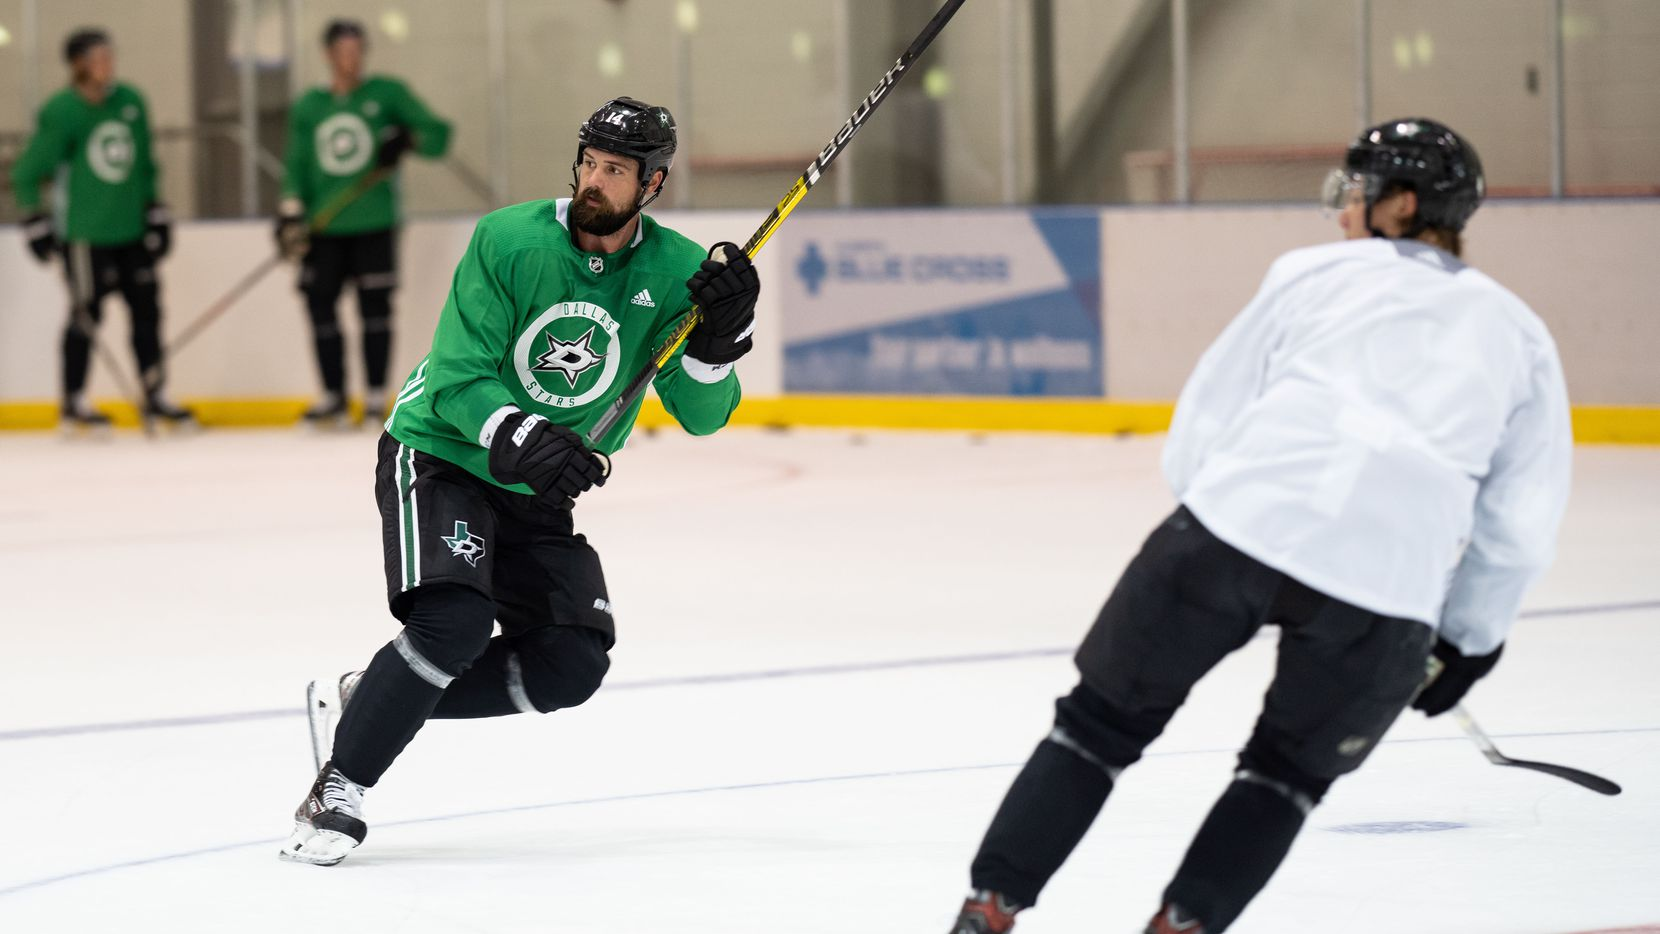 Jamie Benn (green) and Miro Heiskanen get in some practice as the Dallas Stars work out in their 'bubble' in Edmonton, in Alberta, Canada, on July 28, 2020.